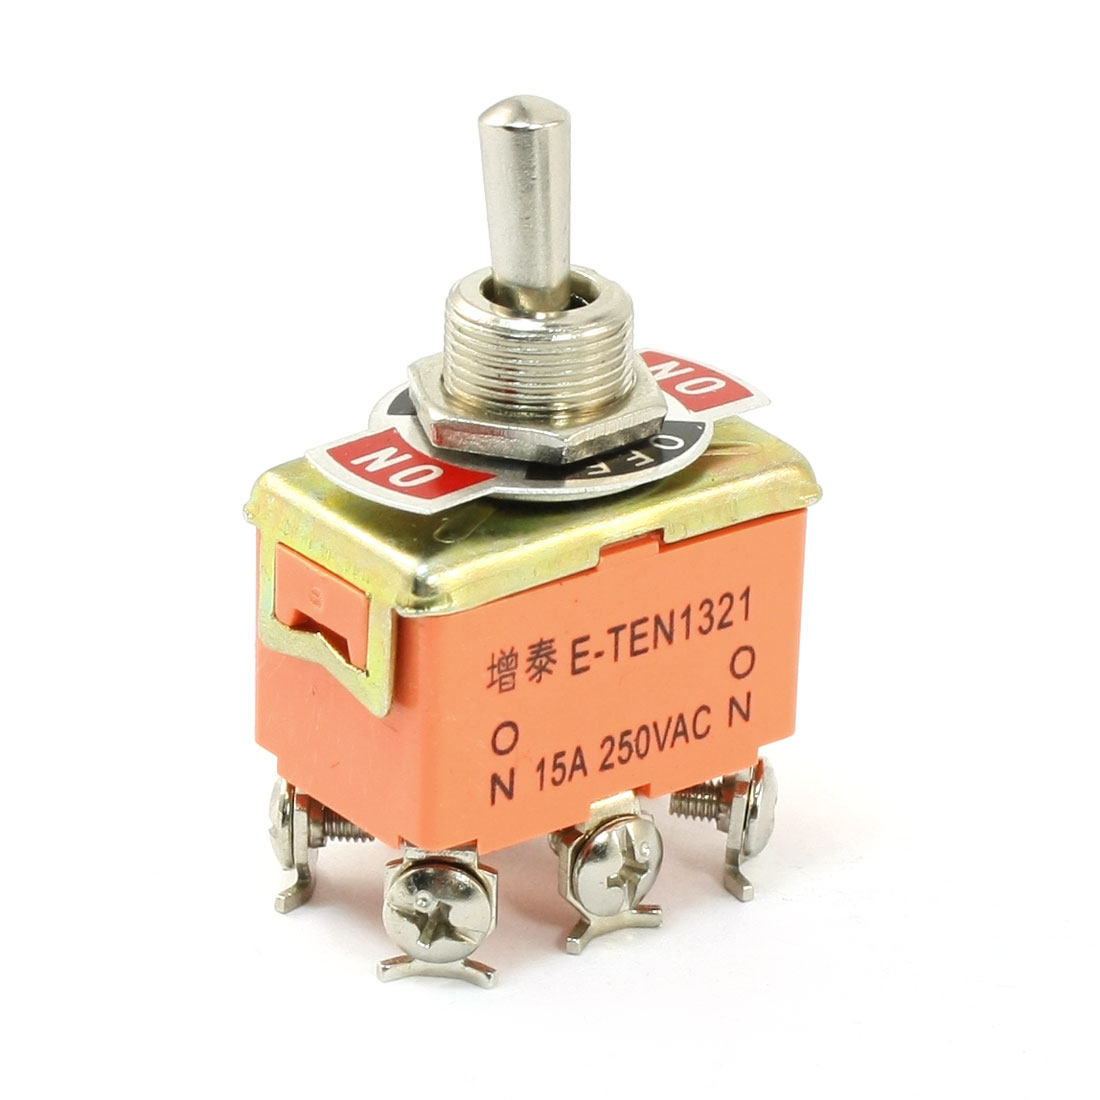 Wobble Lever DPDT Momentary ON-OFF-ON 3 Position Toggle Switch